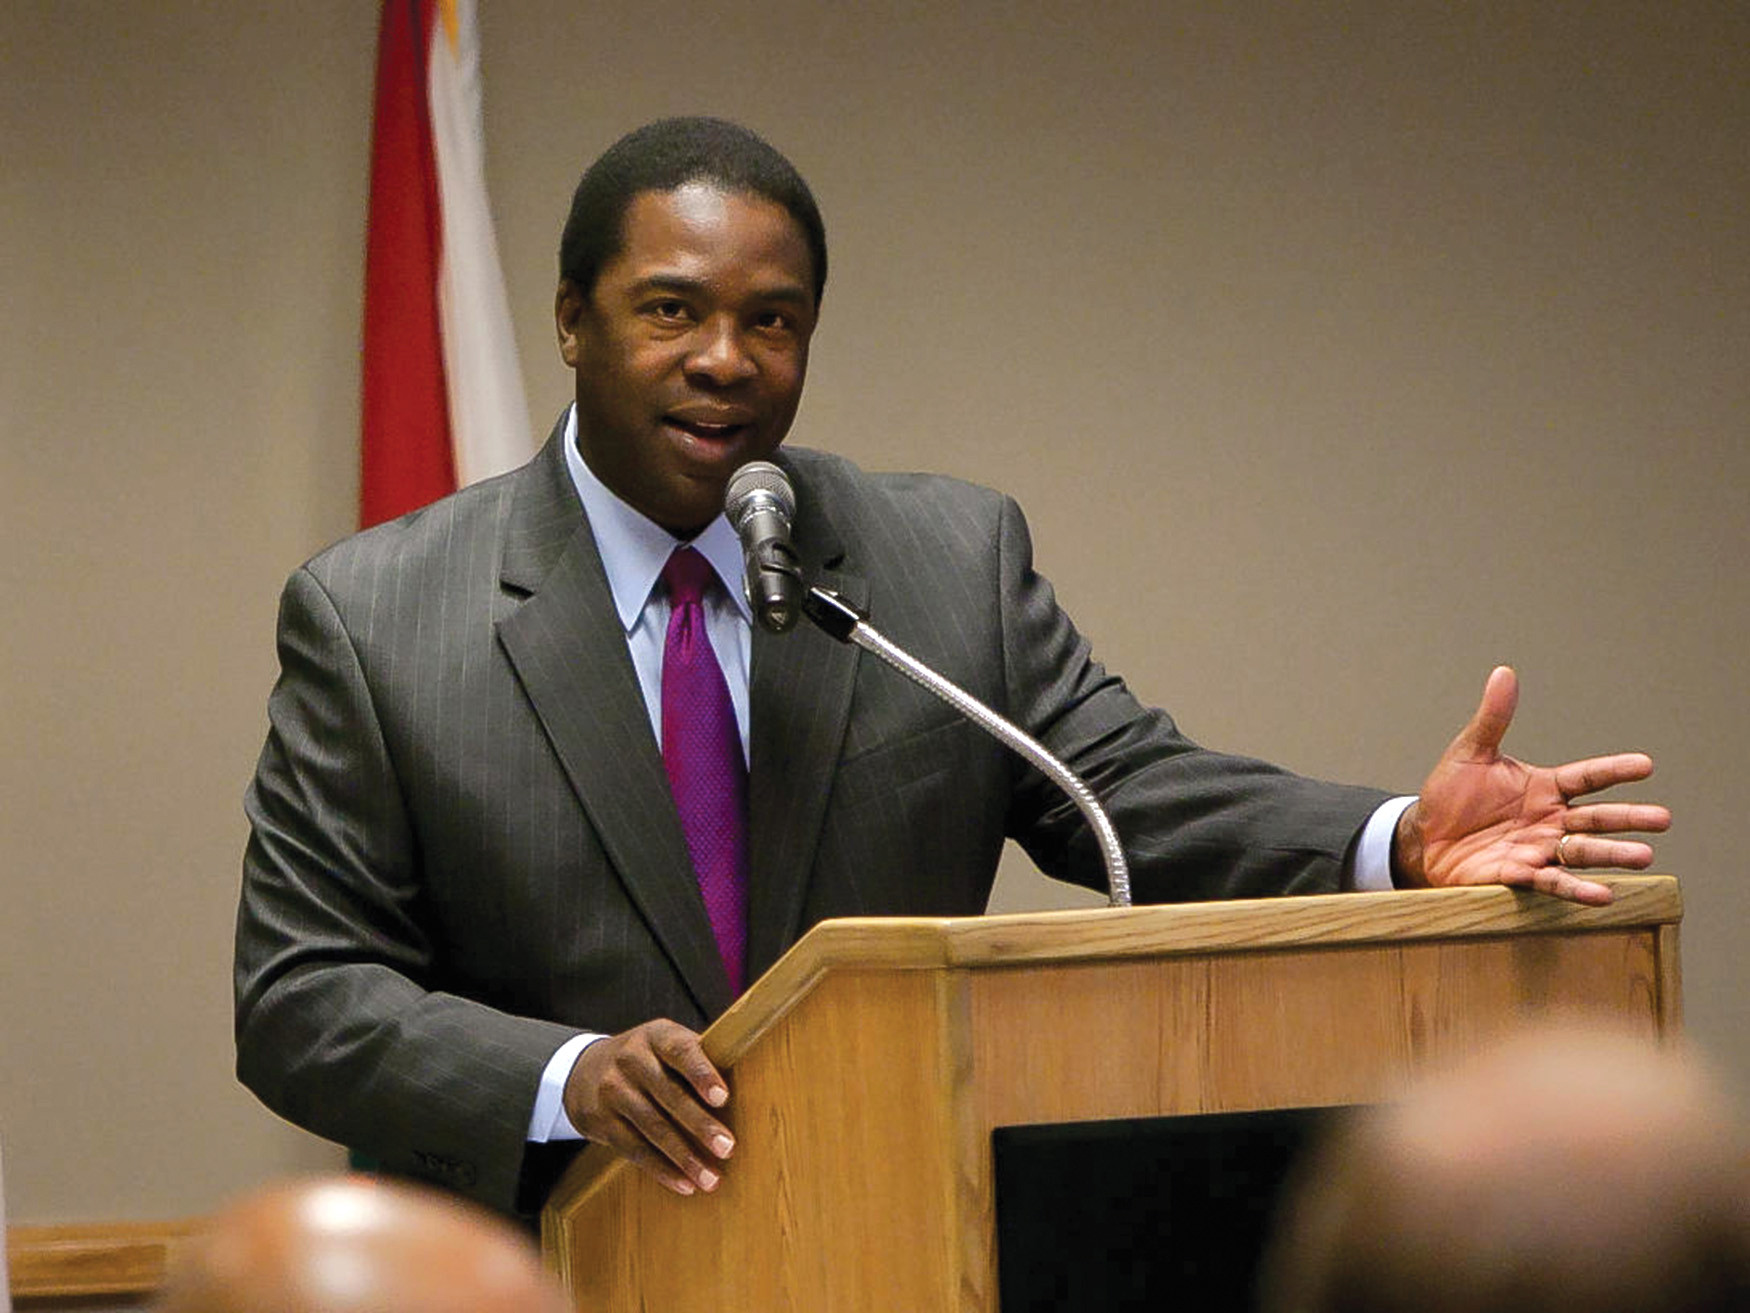 Jacksonville Mayor Alvin Brown has been accepting donations for travel for two years — but now taxpayers will have to foot the bill, according to a ruling by the Florida Ethics Commission. Brown was relying on the advice of General Counsel Cindy Laquidara, who believed travel expenses paid by others were gifts to the city, not to Brown. But in March, the Ethics Commission disagreed. The city has reimbursed about $8,700 for expenses related to 14 trips, The Florida Times-Union reported. The city is reviewing a policy that would allow it to receive donations for travel expenses.